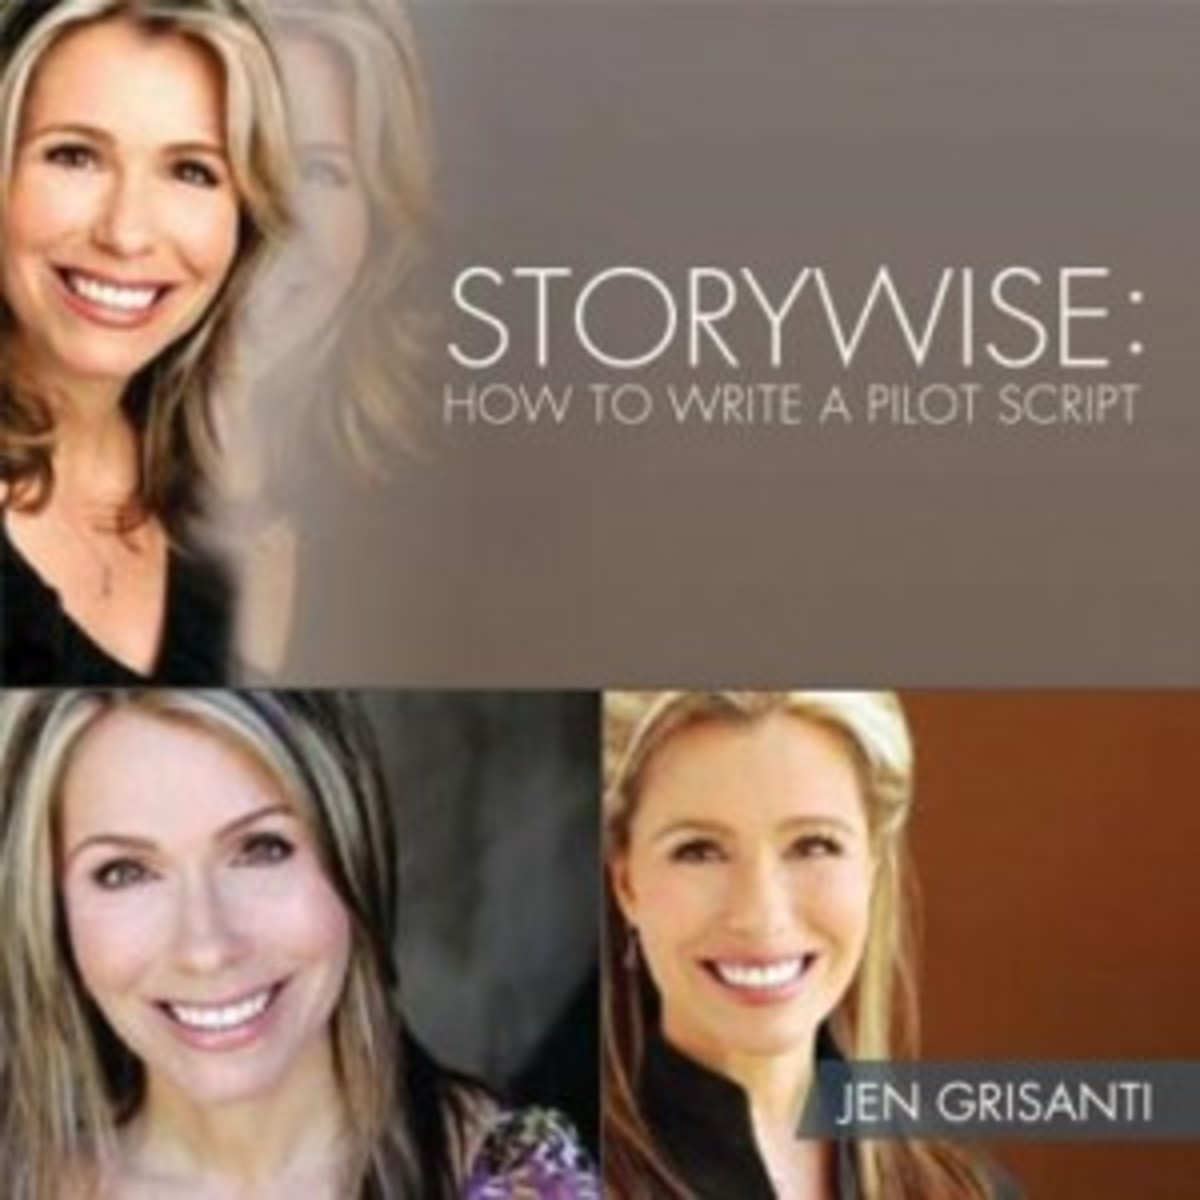 storywise-how-to-write-a-tv-pilot-script-jen-grisanti_medium